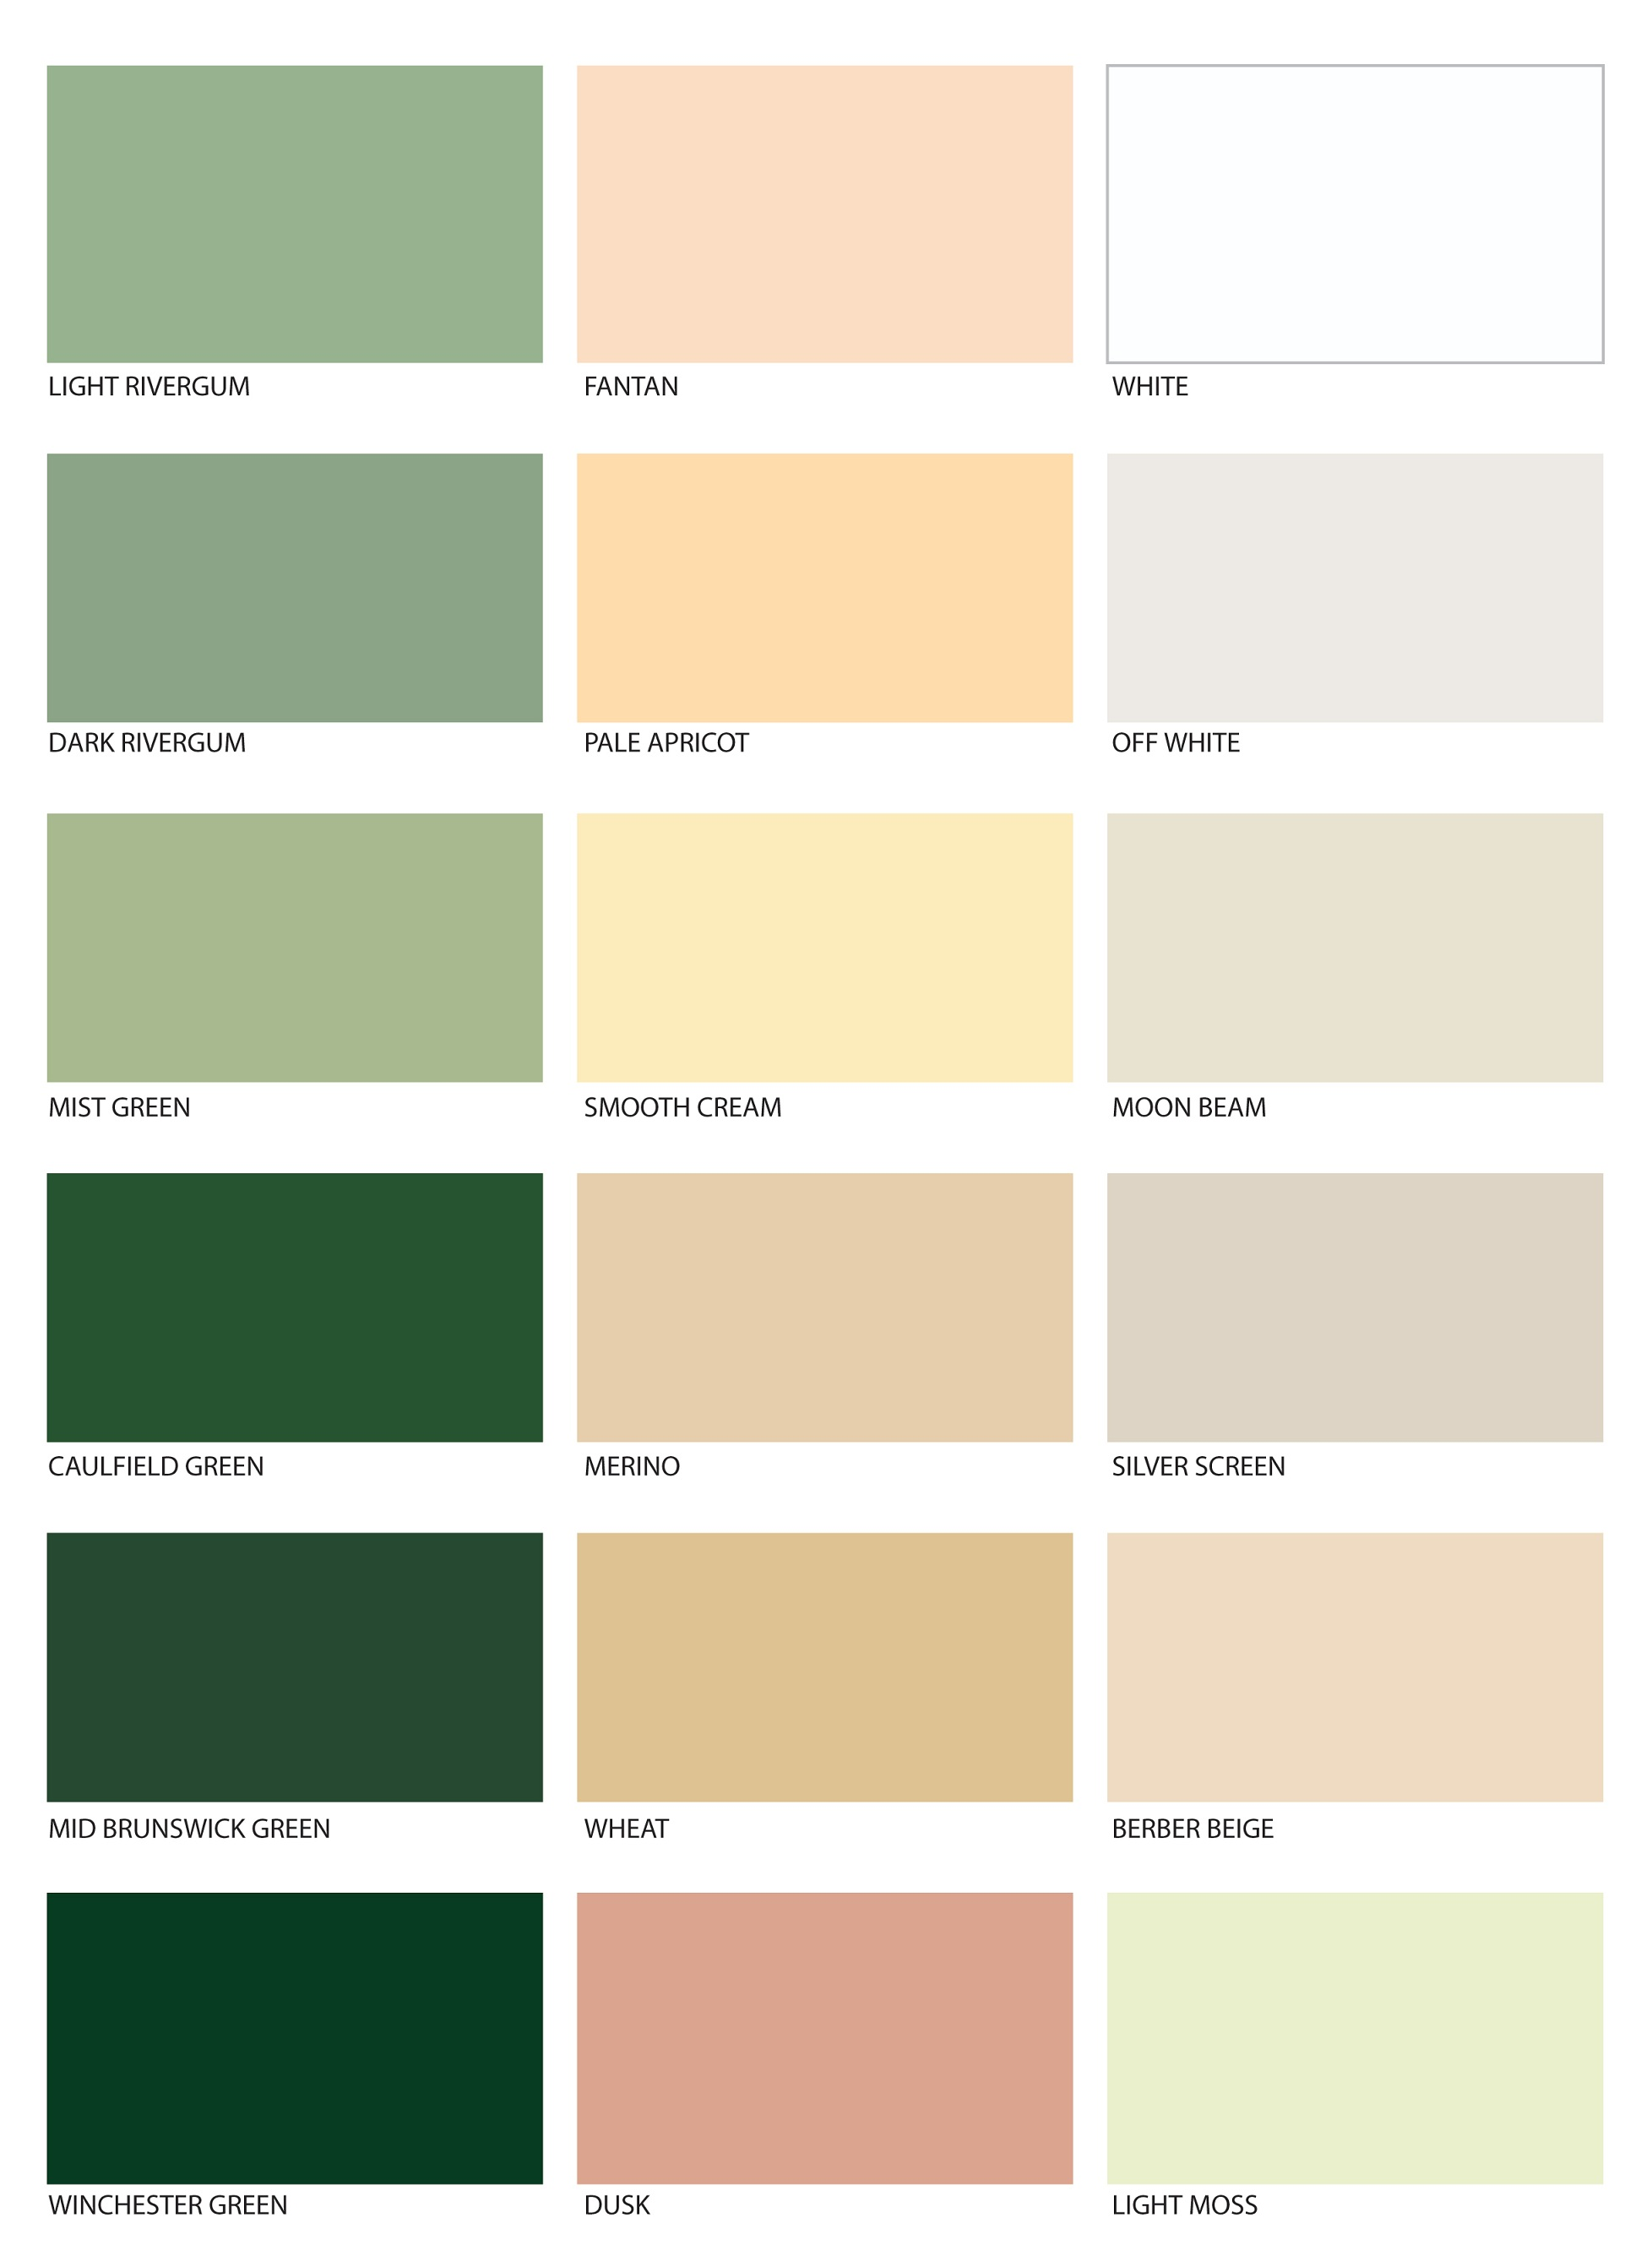 Leyland paints colour chart - Colour Chart Green However We Recommend Checking Your Chosen Colour Against A Painted Sample Of